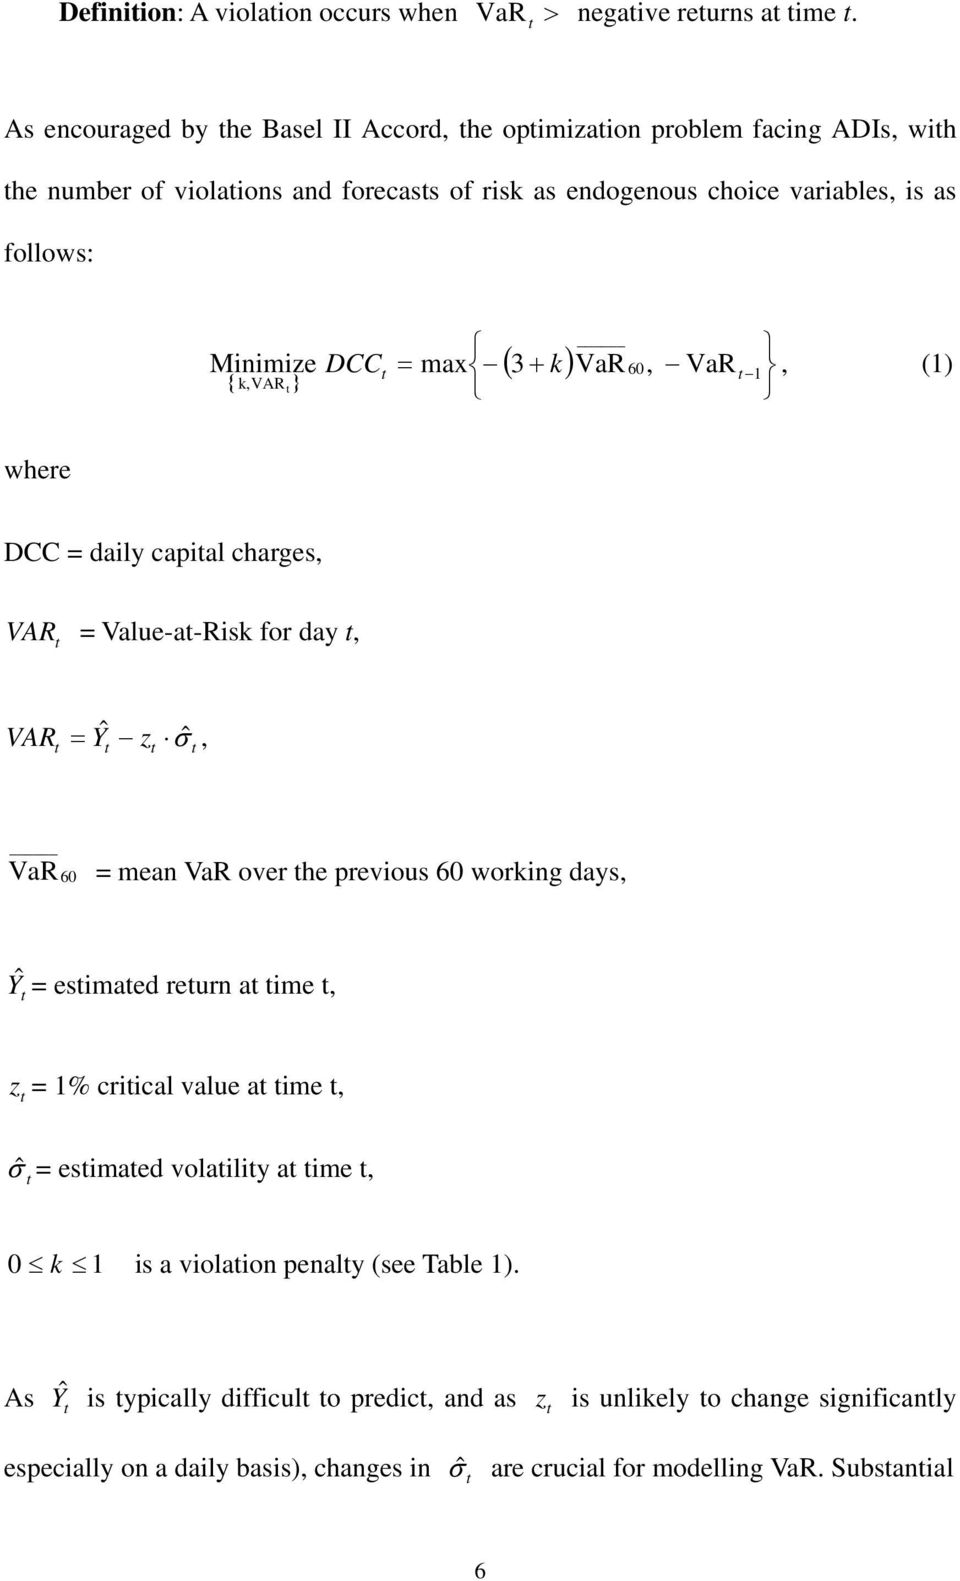 max ( 3 + k) { } k,var DCC = VaR 60, VaR 1, (1) where DCC = daily capial charges, VAR = Value-a-Risk for day, VAR = Yˆ z σˆ, 60 VaR = mean VaR over he previous 60 working days,